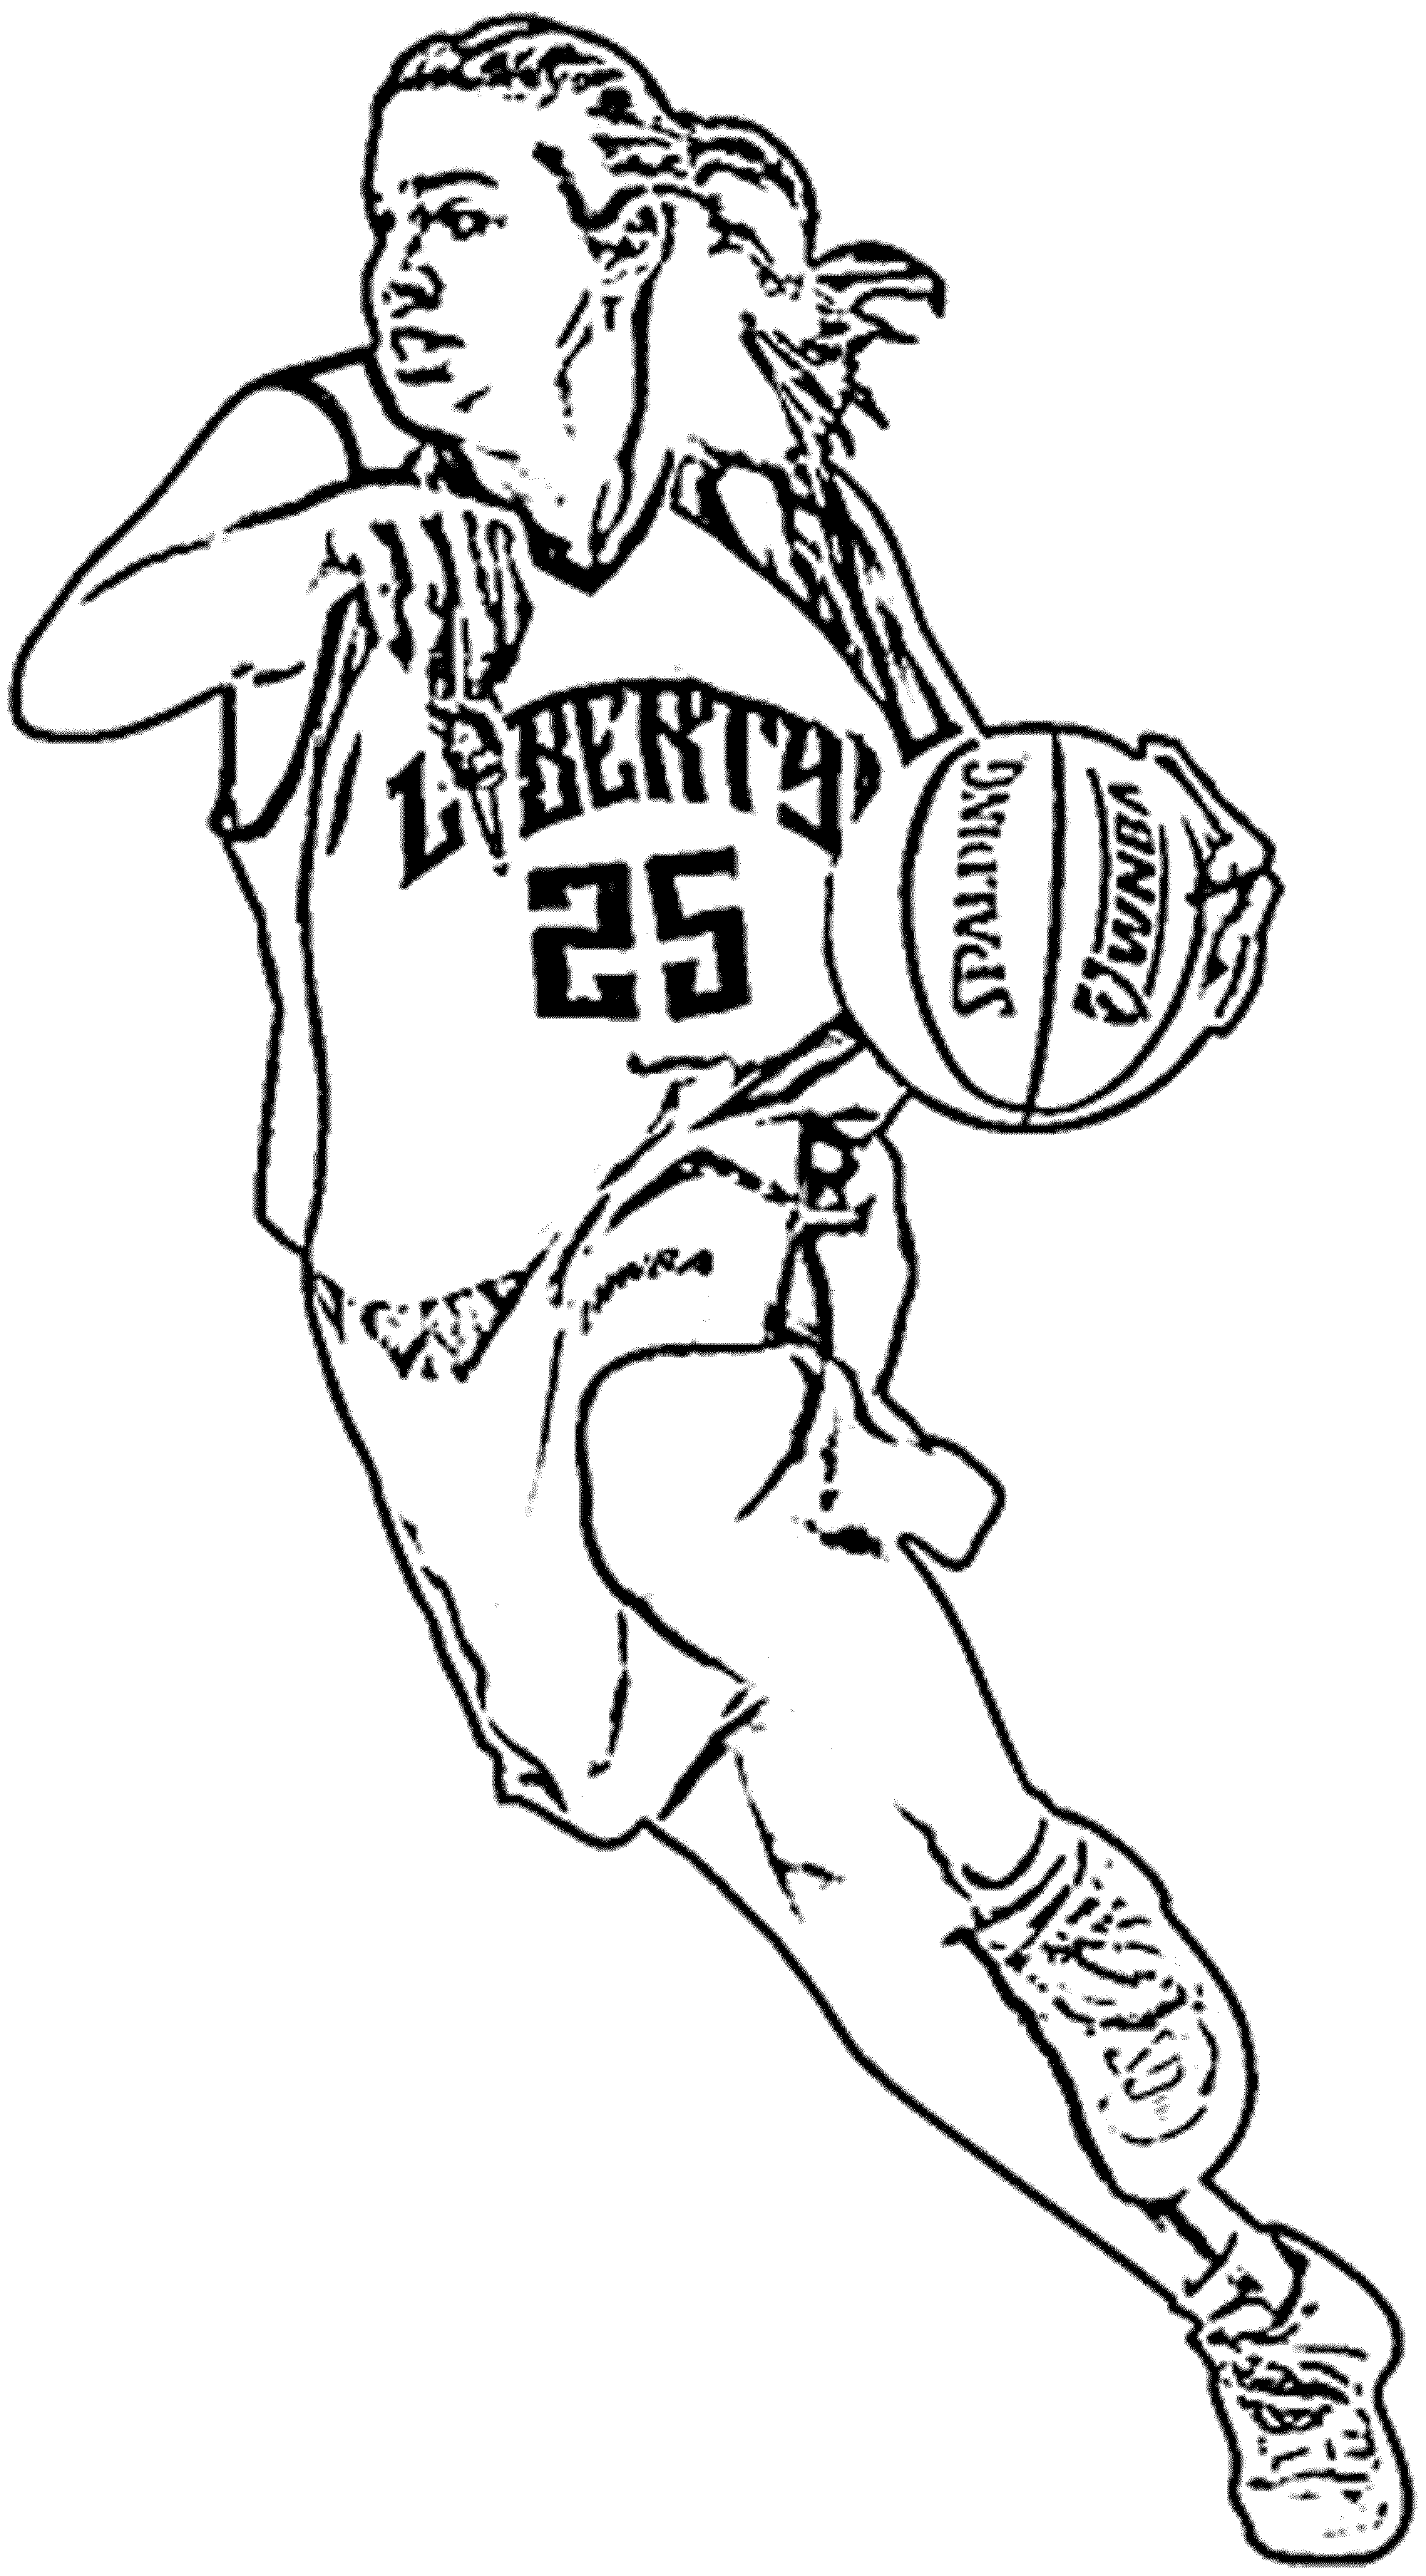 basketball player coloring page a known rebounder timothywarfield coloring basketball player page